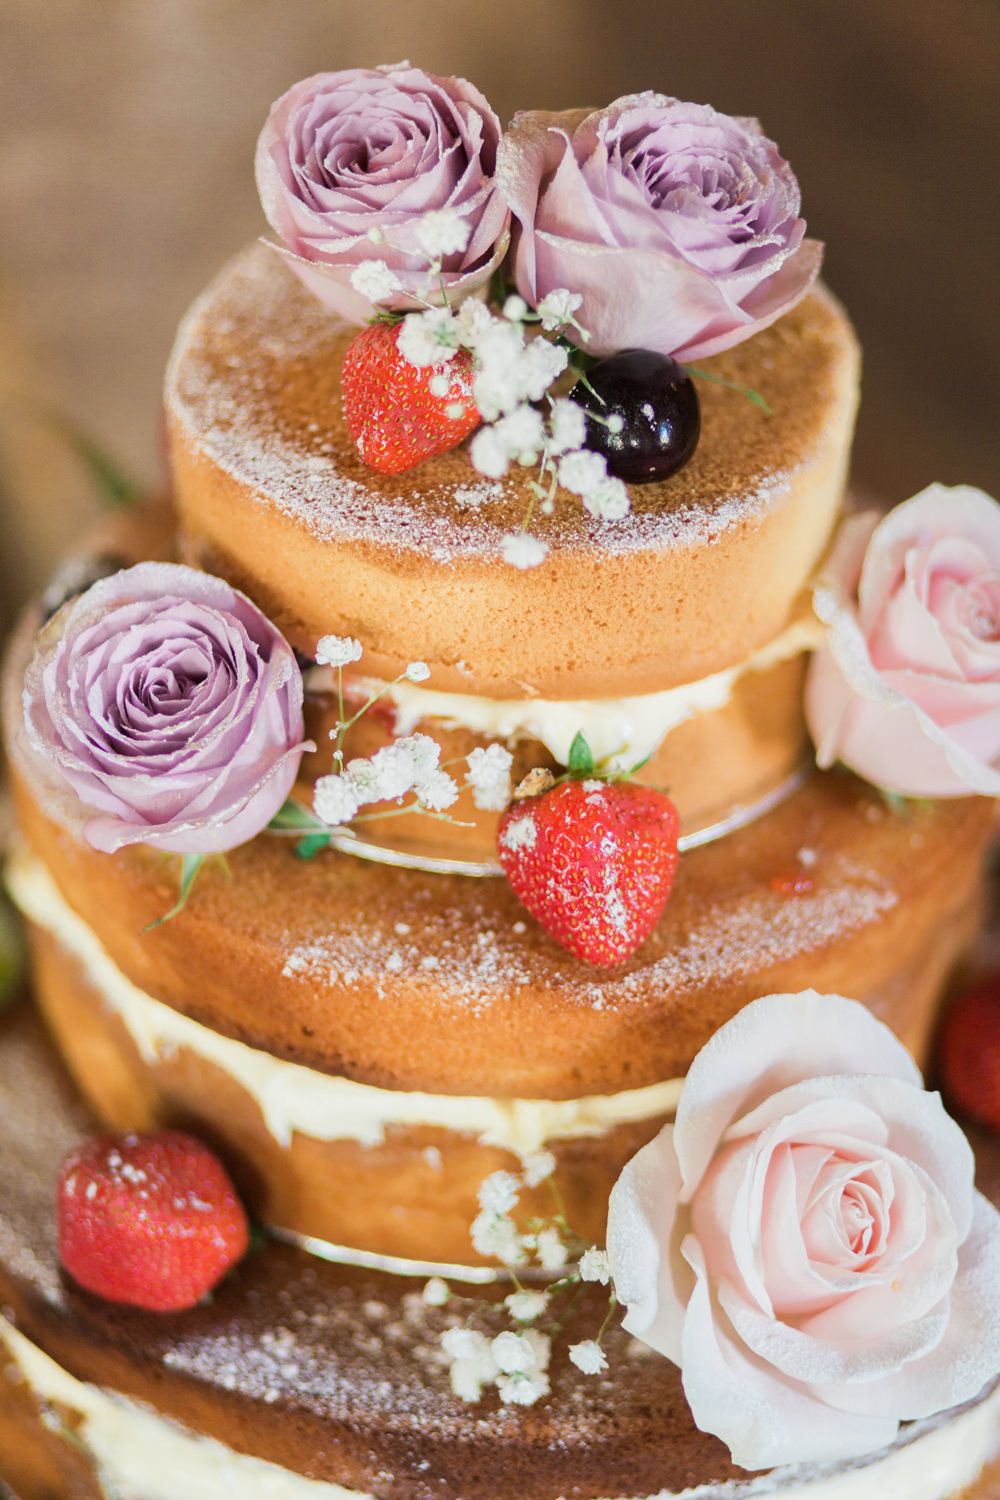 Naked wedding cake with lavender flower decorations